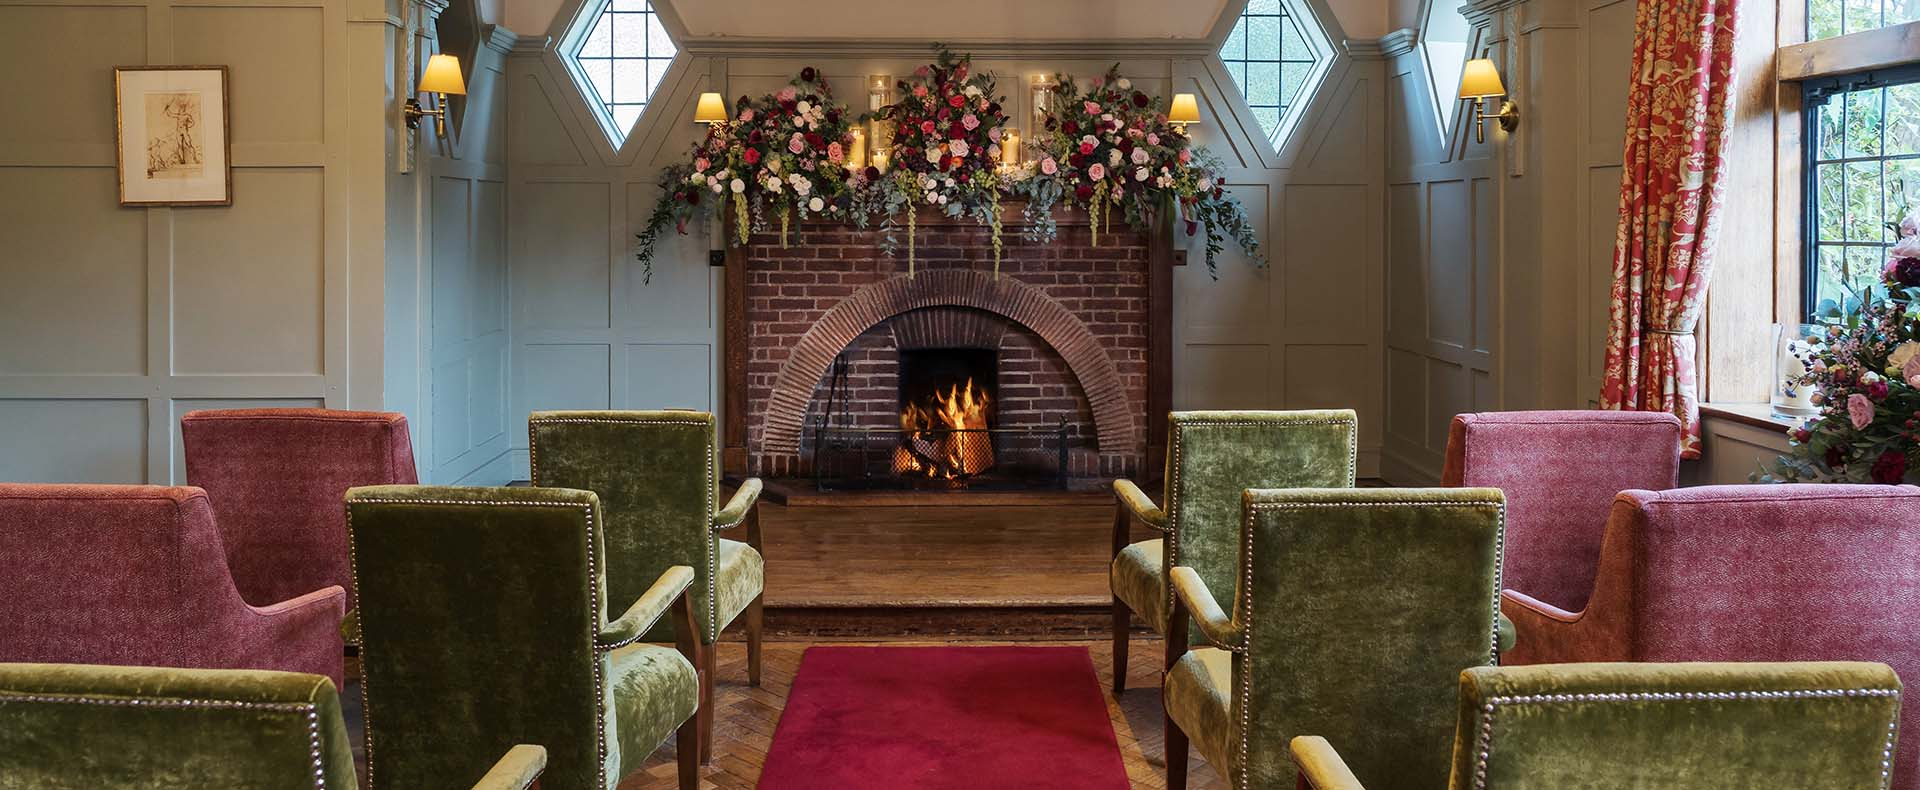 Winter Weddings at The Montagu Arms Hotel